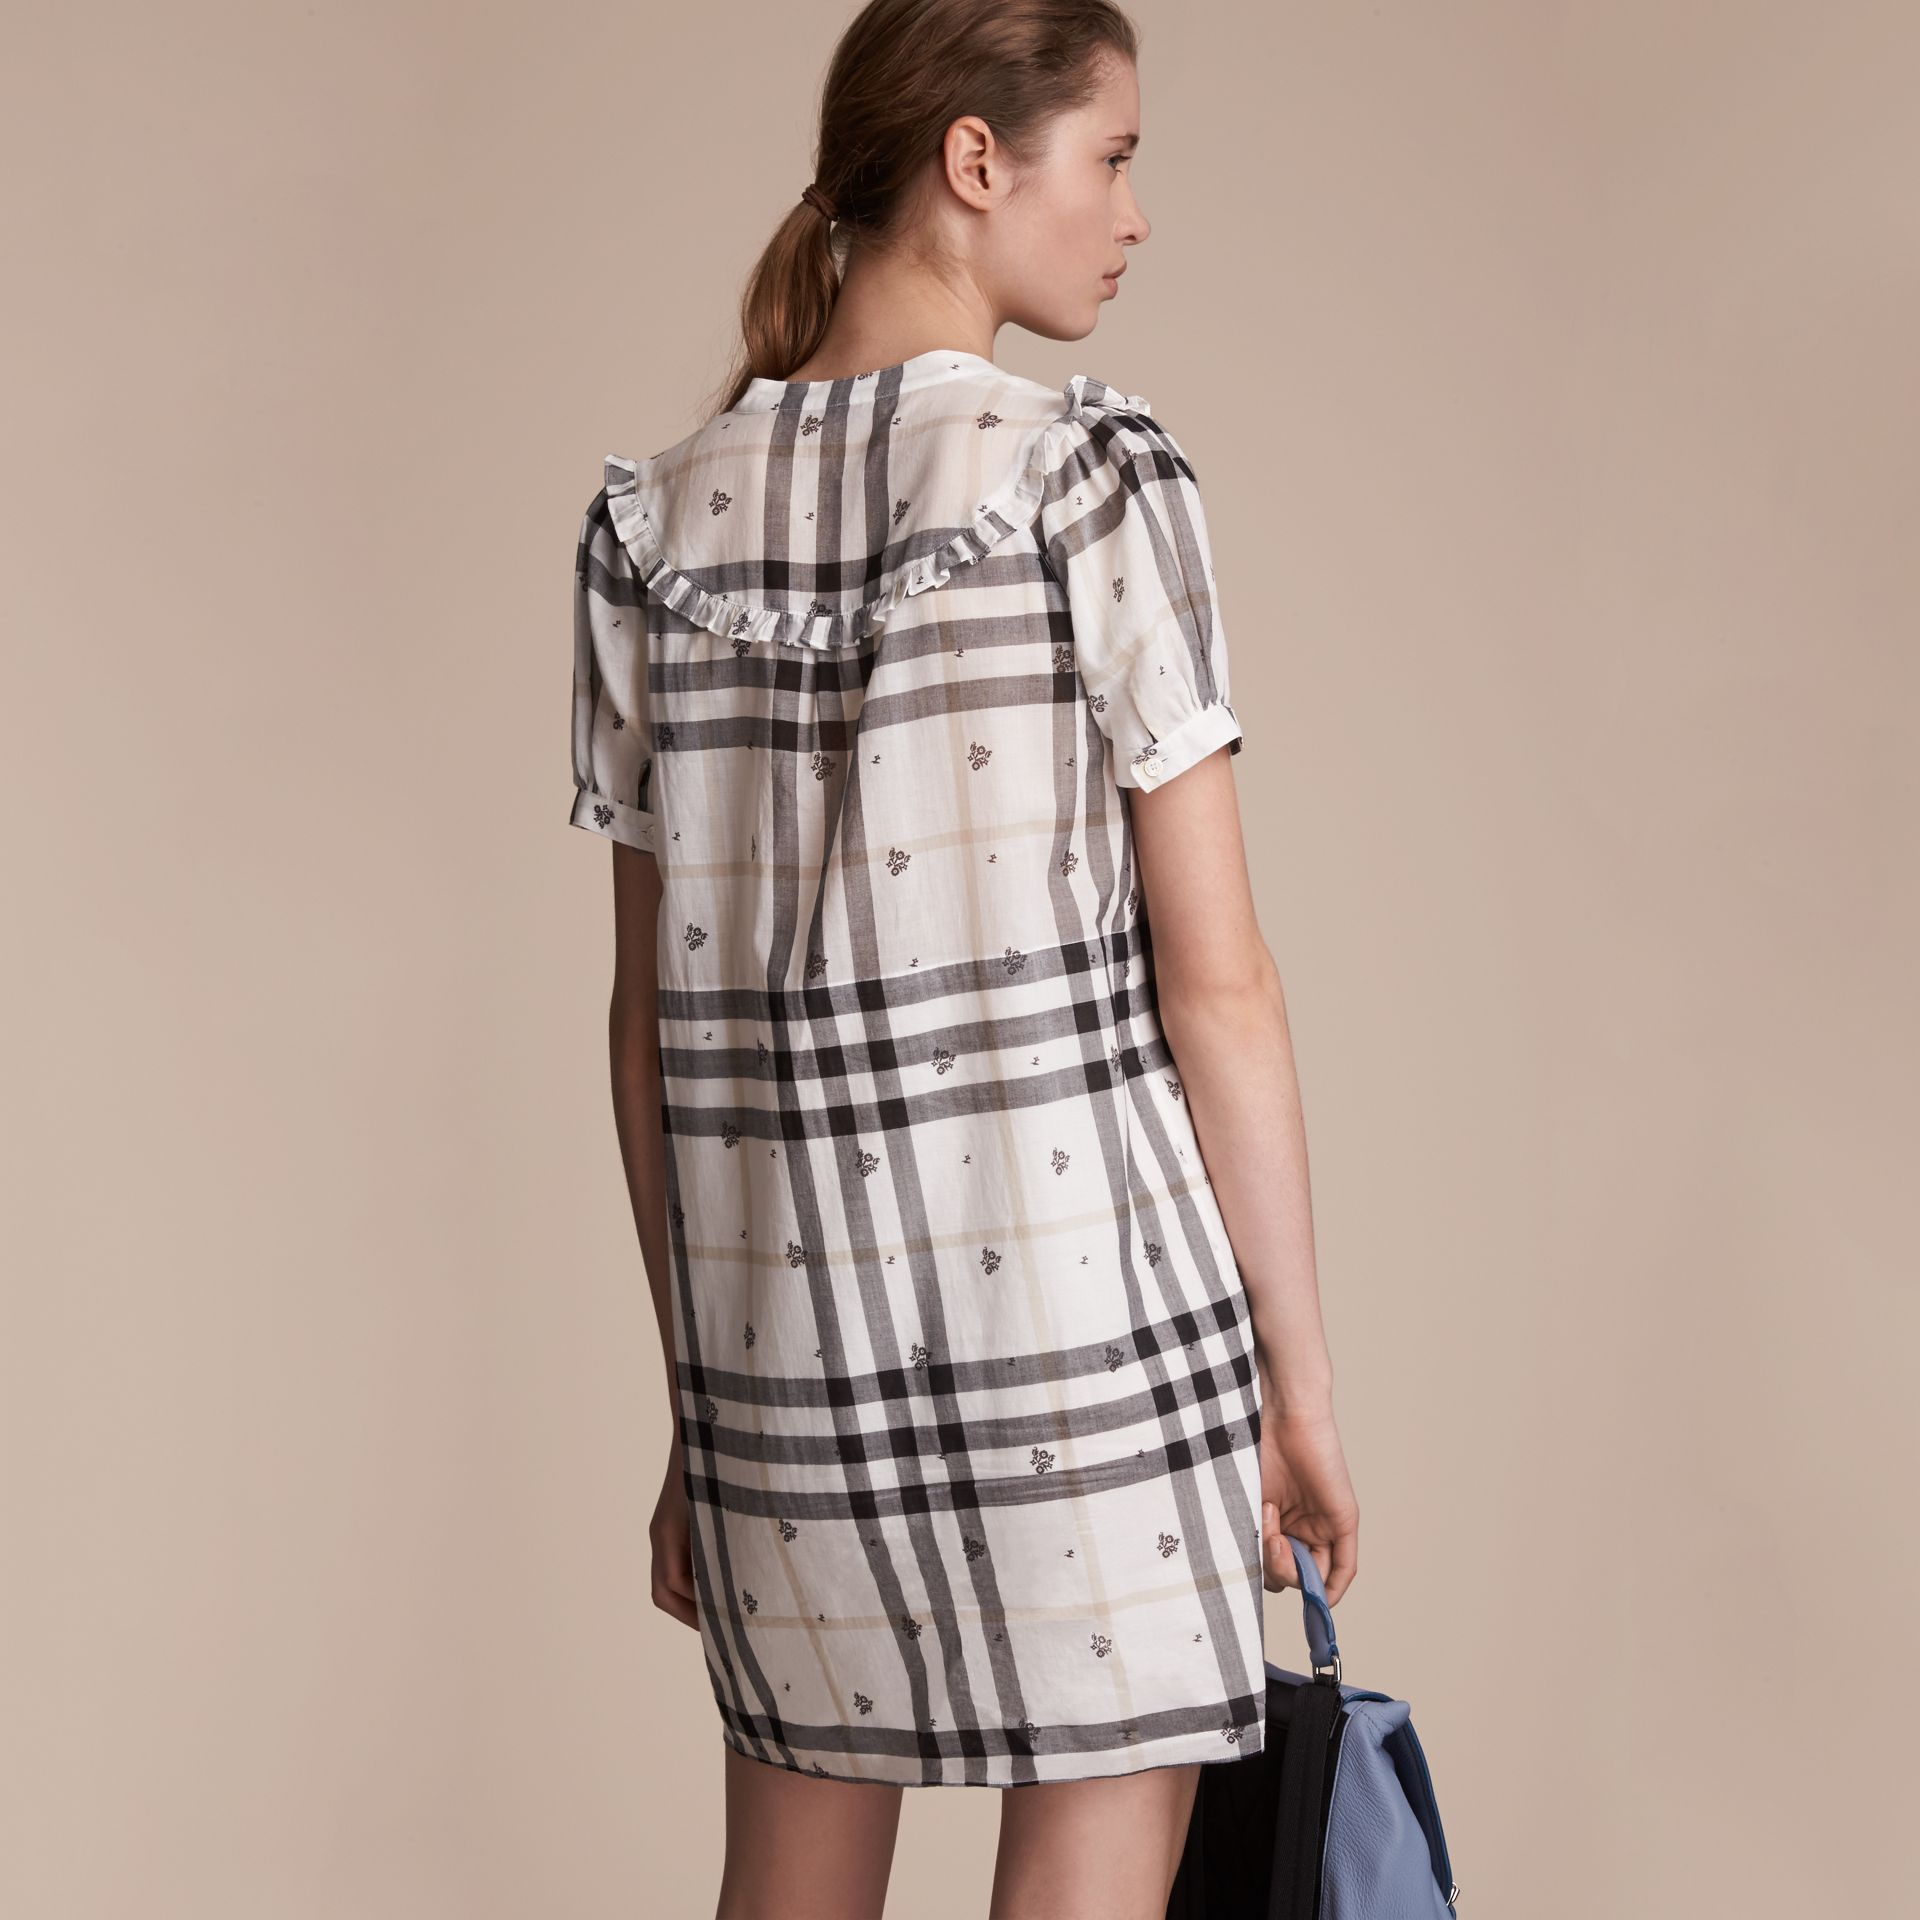 Ruffle Detail Floral Print Check Cotton Dress in White - Women | Burberry Singapore - gallery image 3